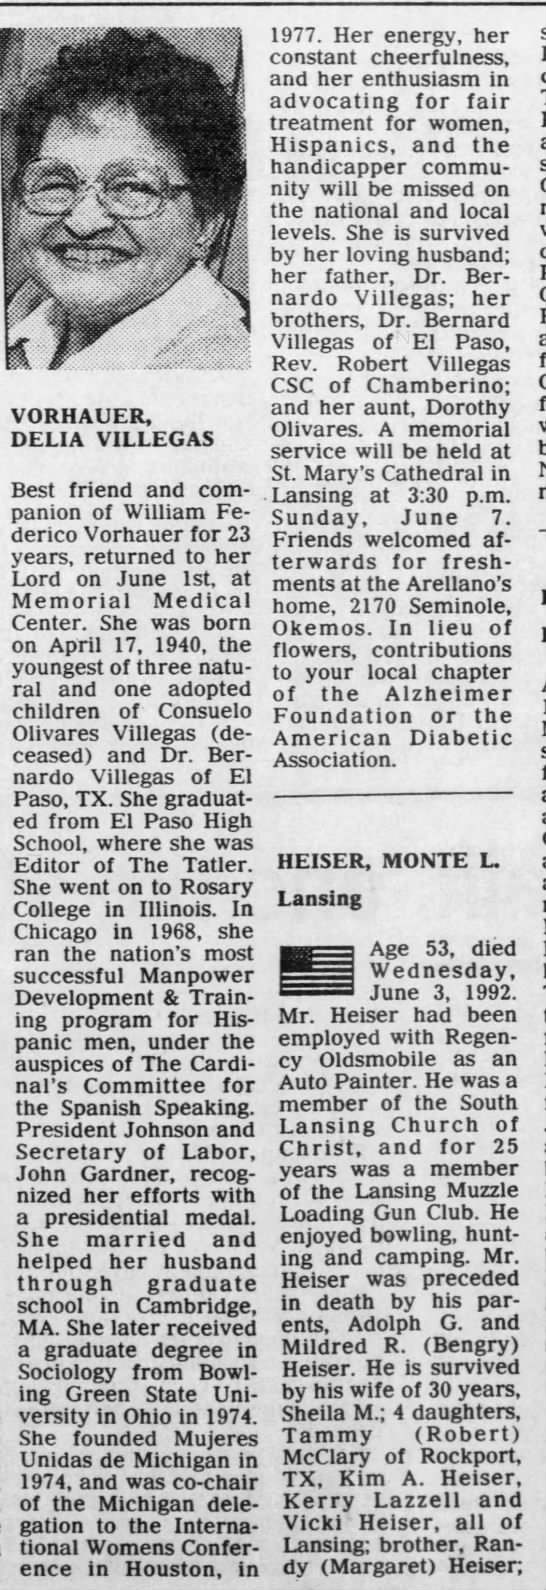 Vorhauer, Delia Villegas. The Lansing State Journal. (Lansing, Michigan) 5 June 1992, p 14 -